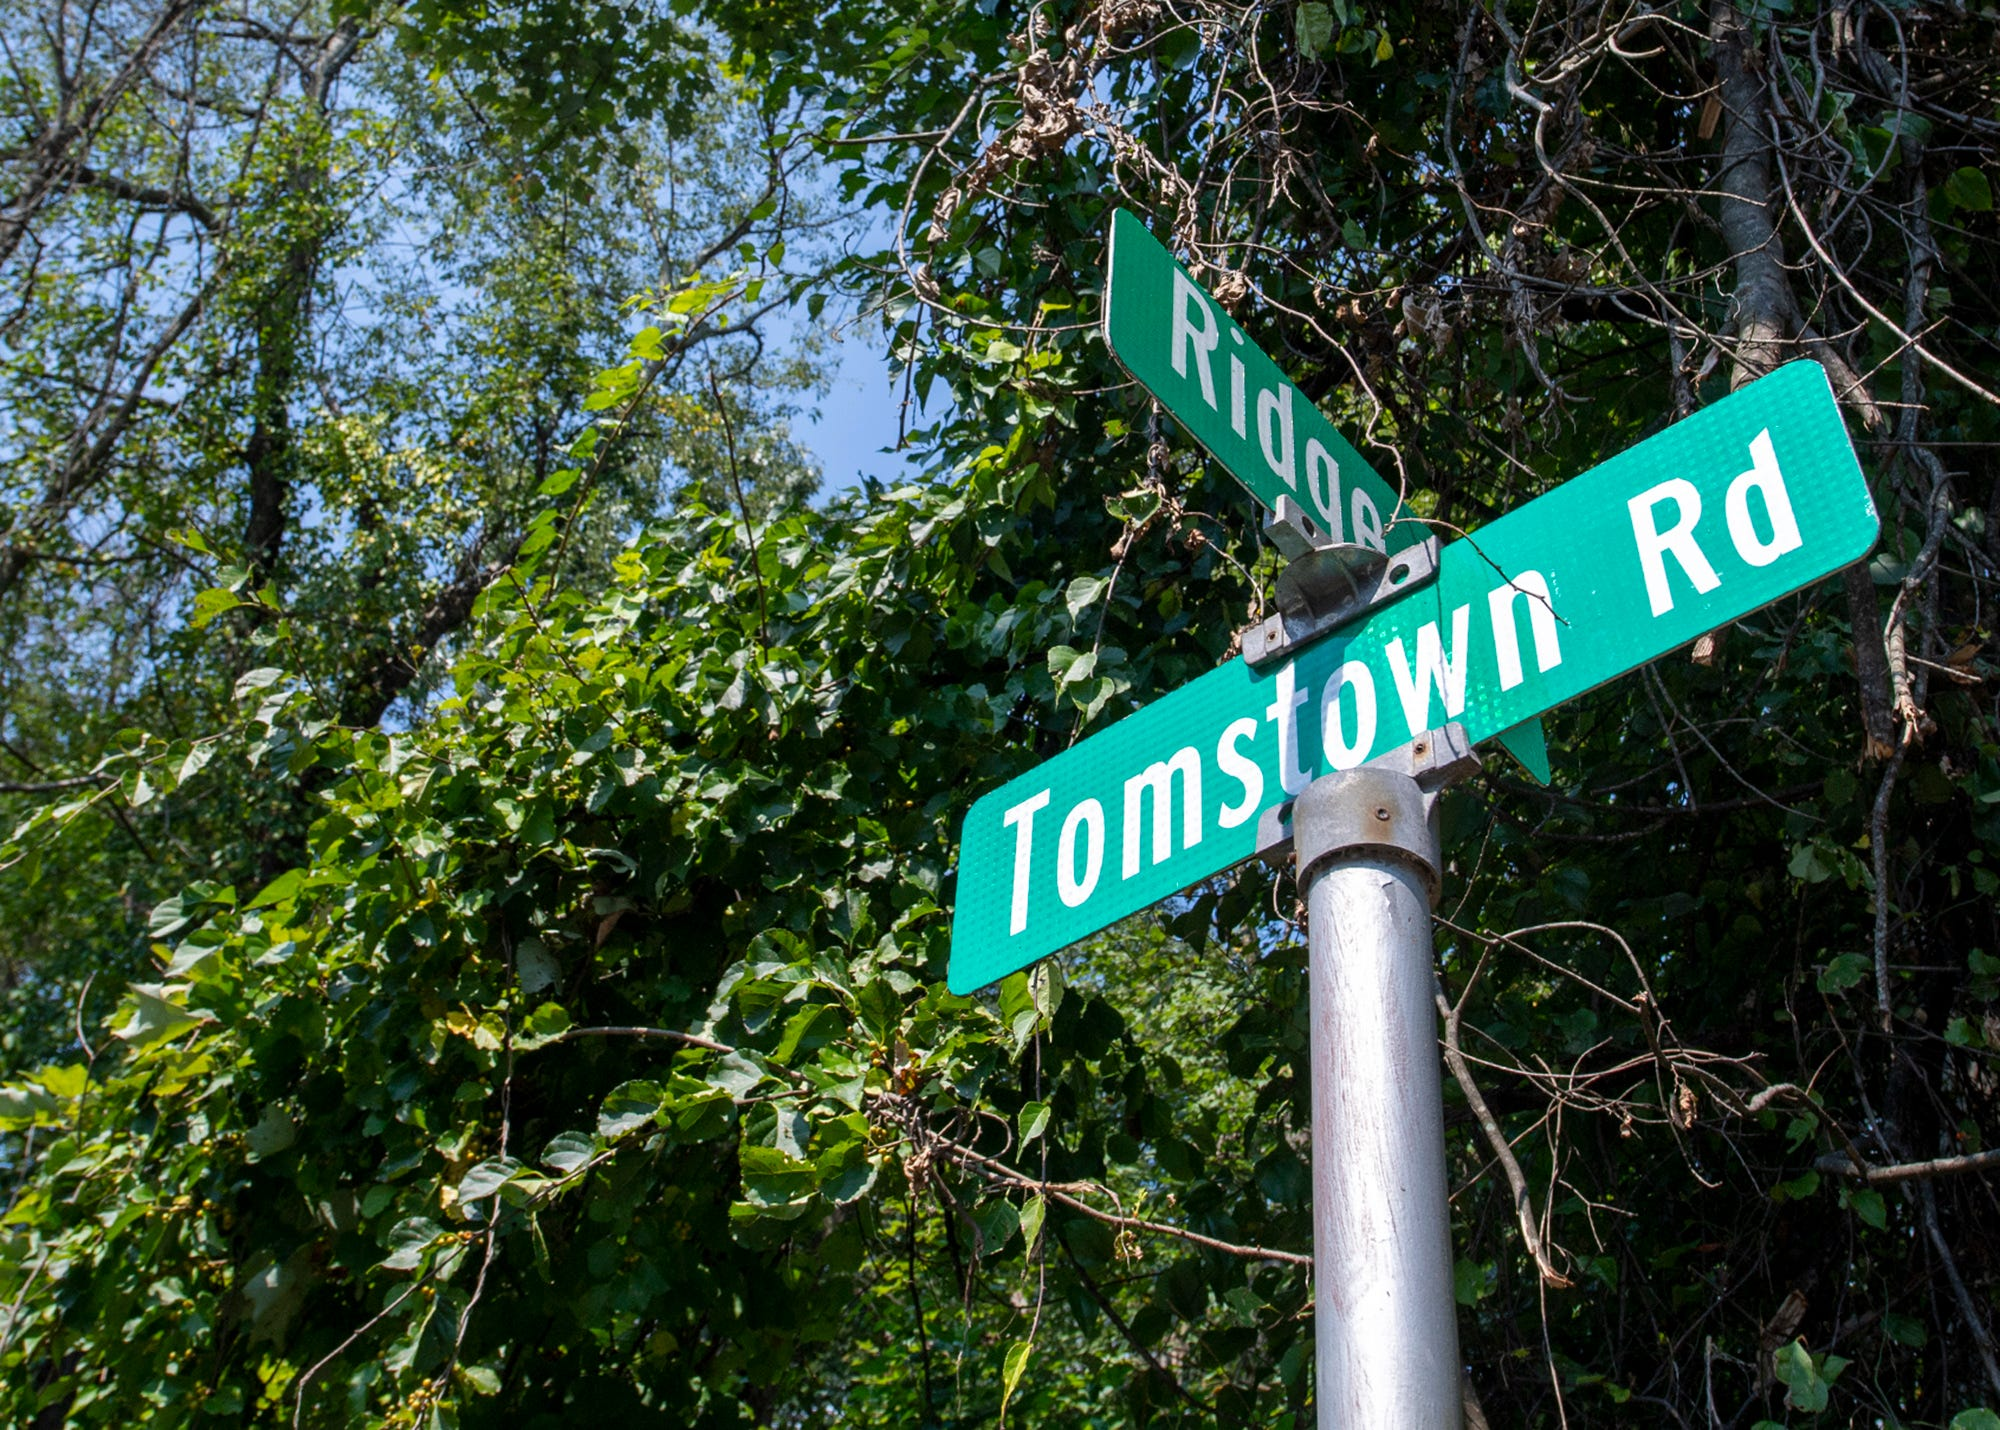 The intersection of Moonshine (Route 443) Ridge and Tomstown Road is near where the unidentified girl was found in 1973.